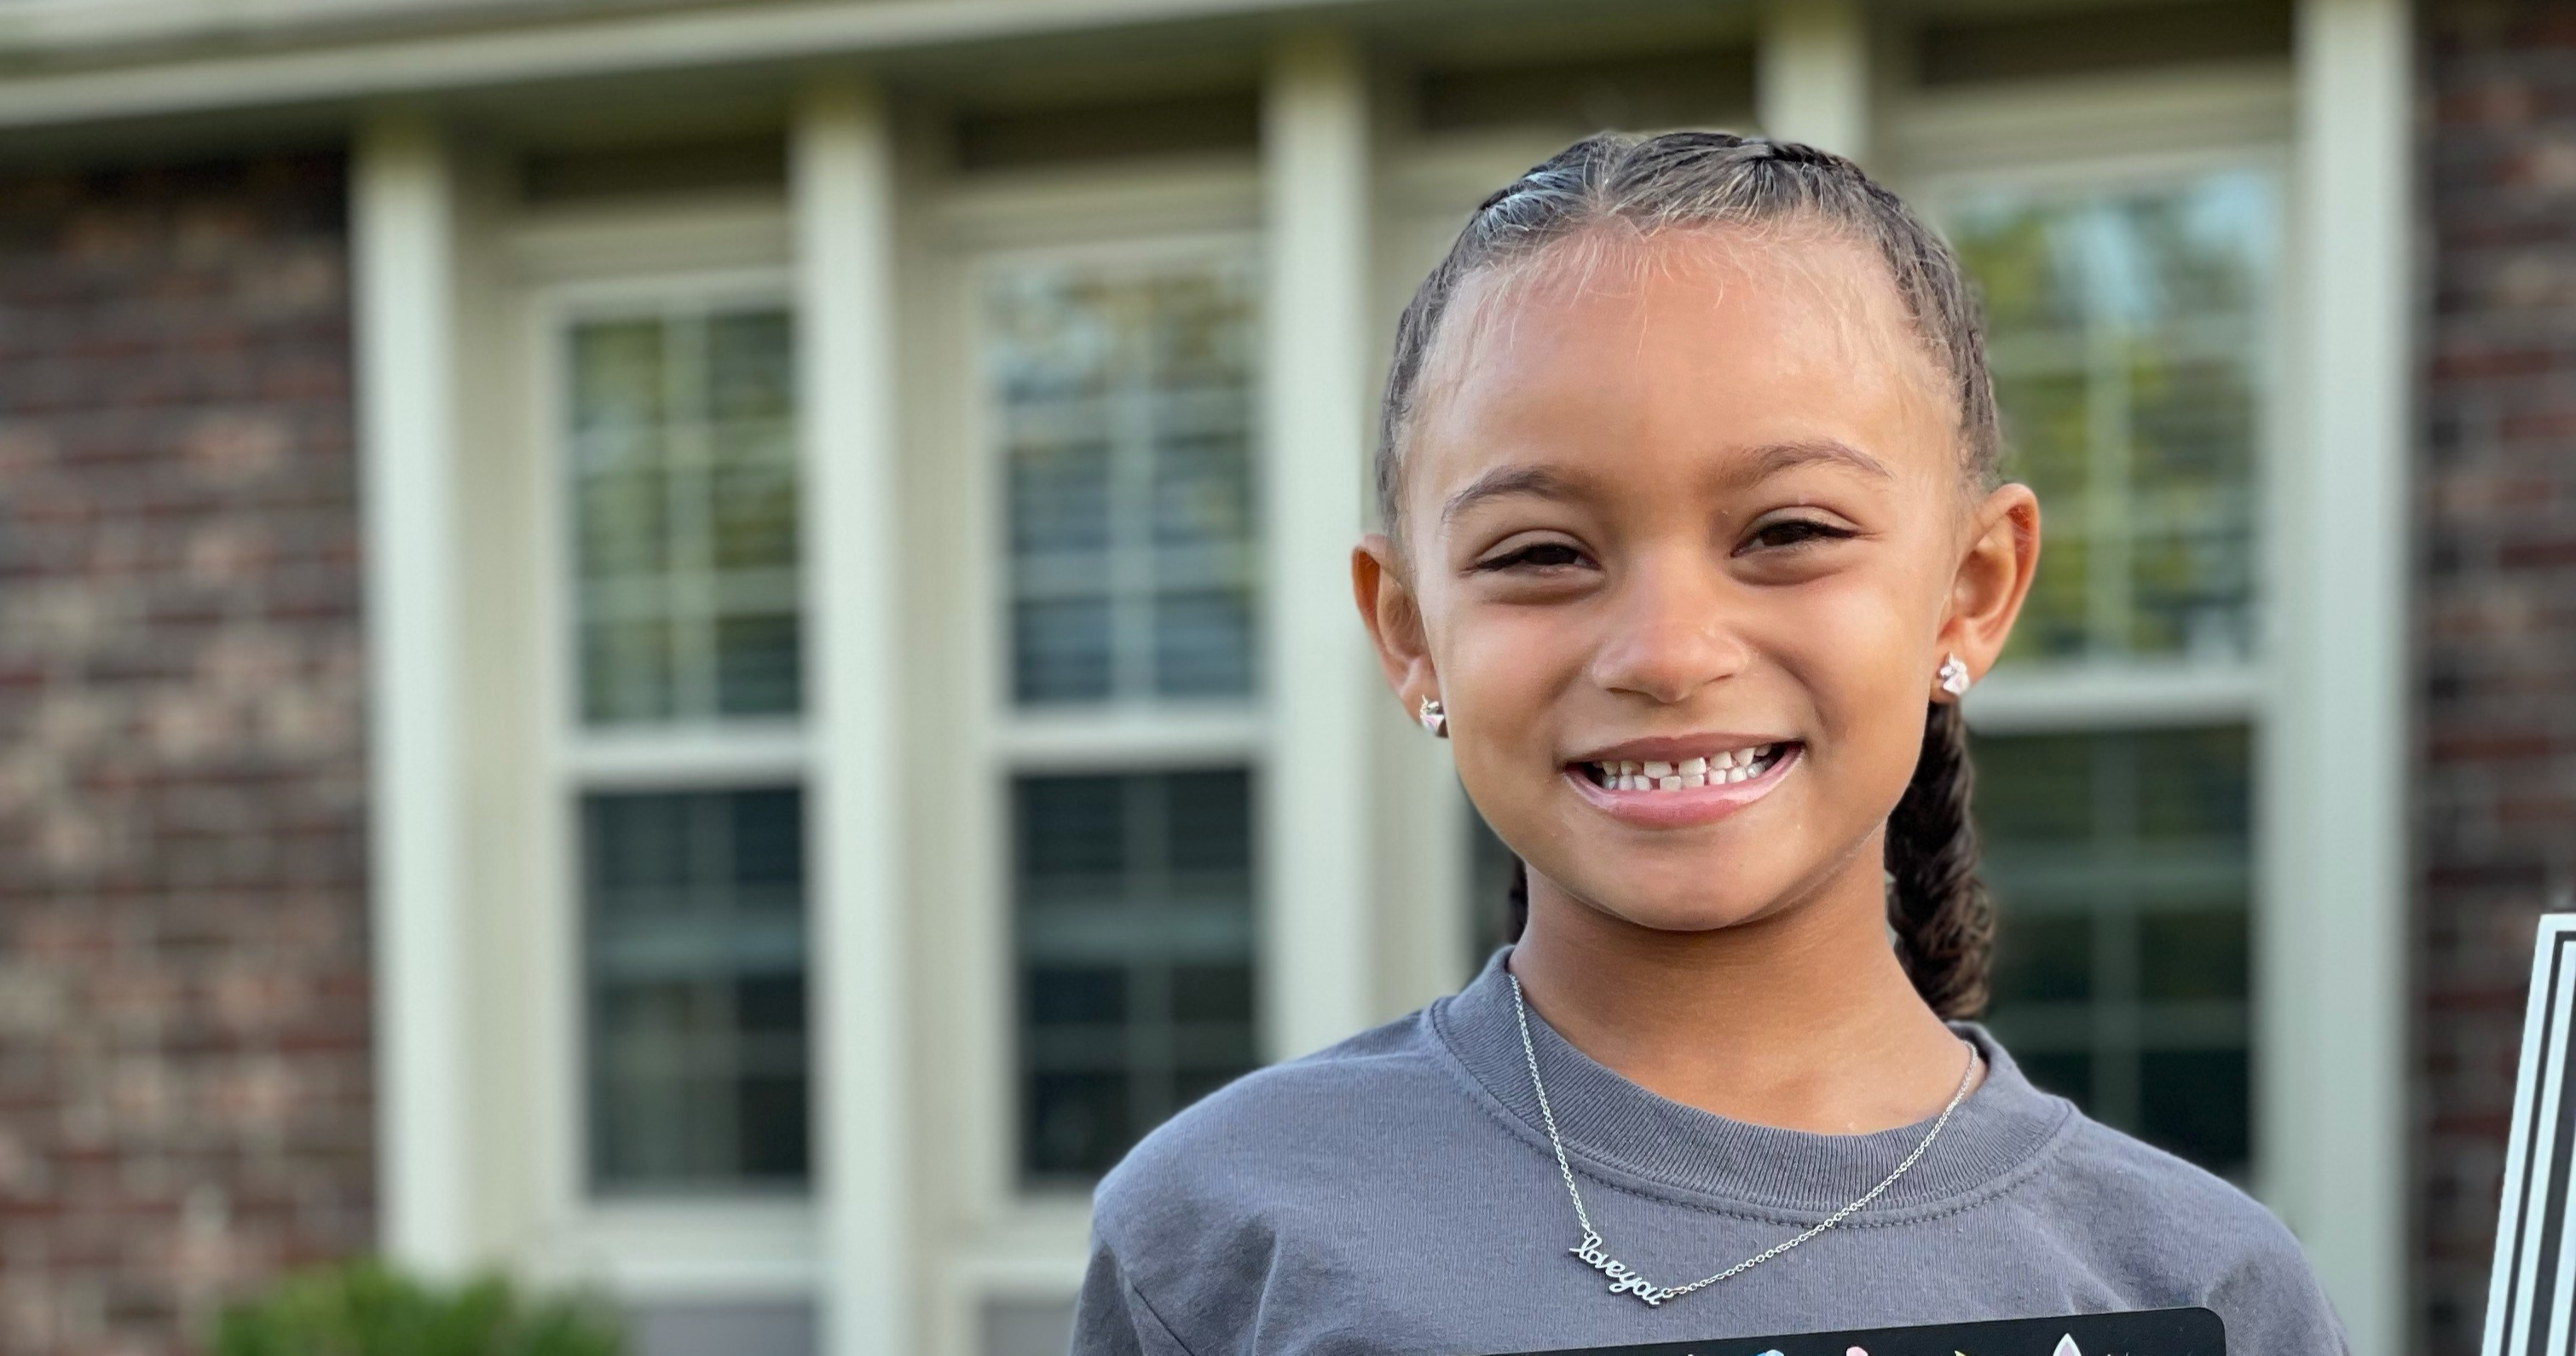 Student smiling on the first day of school.